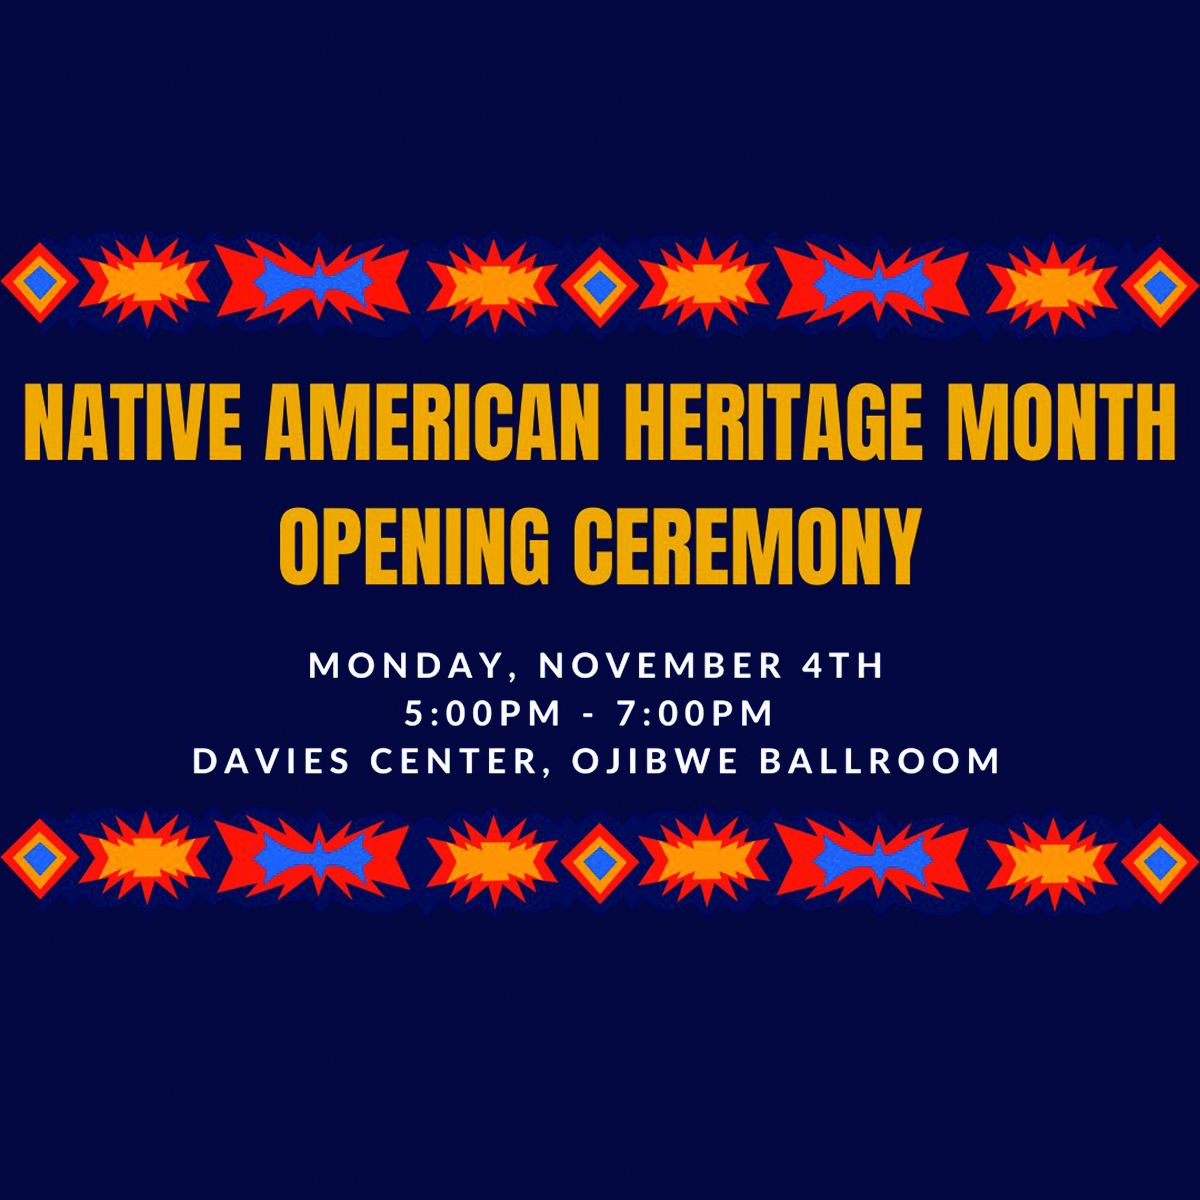 Native American Heritage Month kicks off Nov. 4.